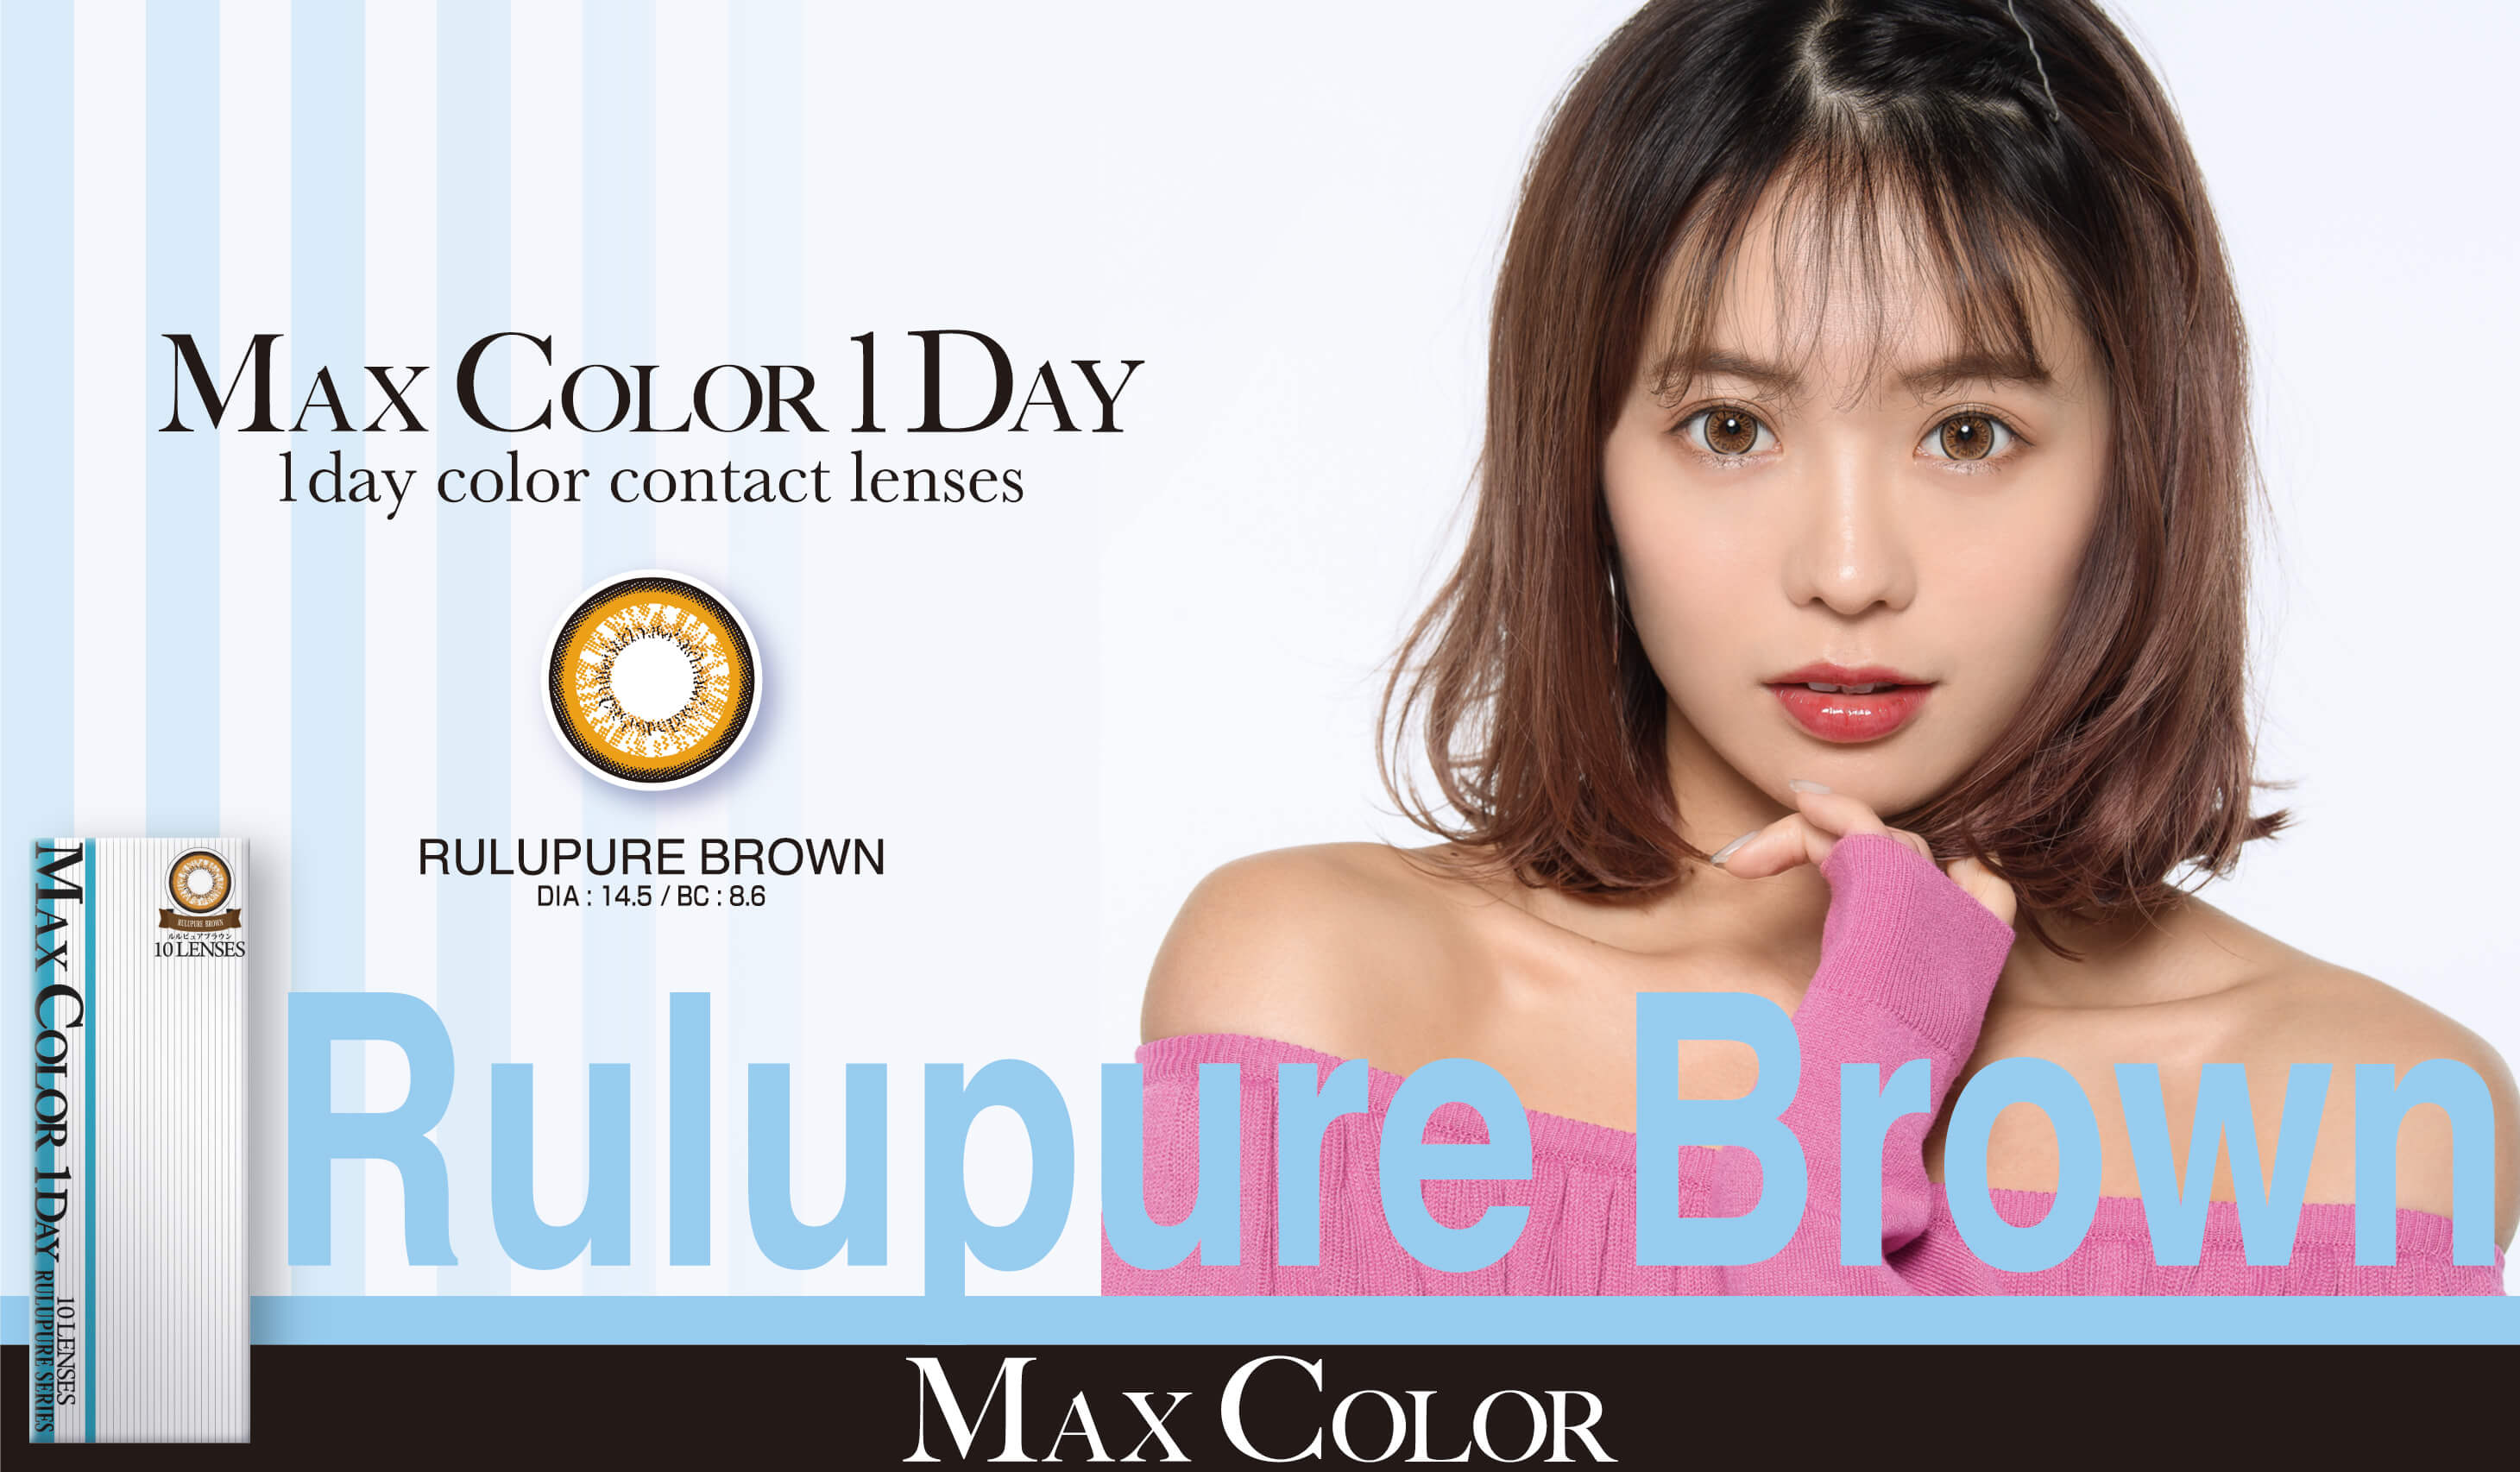 MaxColor1day-マックスカラーワンデー|【鈴木あや・寿るい・筒井結愛】プロデュースカラコン|MAX COLOR 1DAY 1day color contact lenses RULUPURE BROWN DIA:14.5/BC:8.6